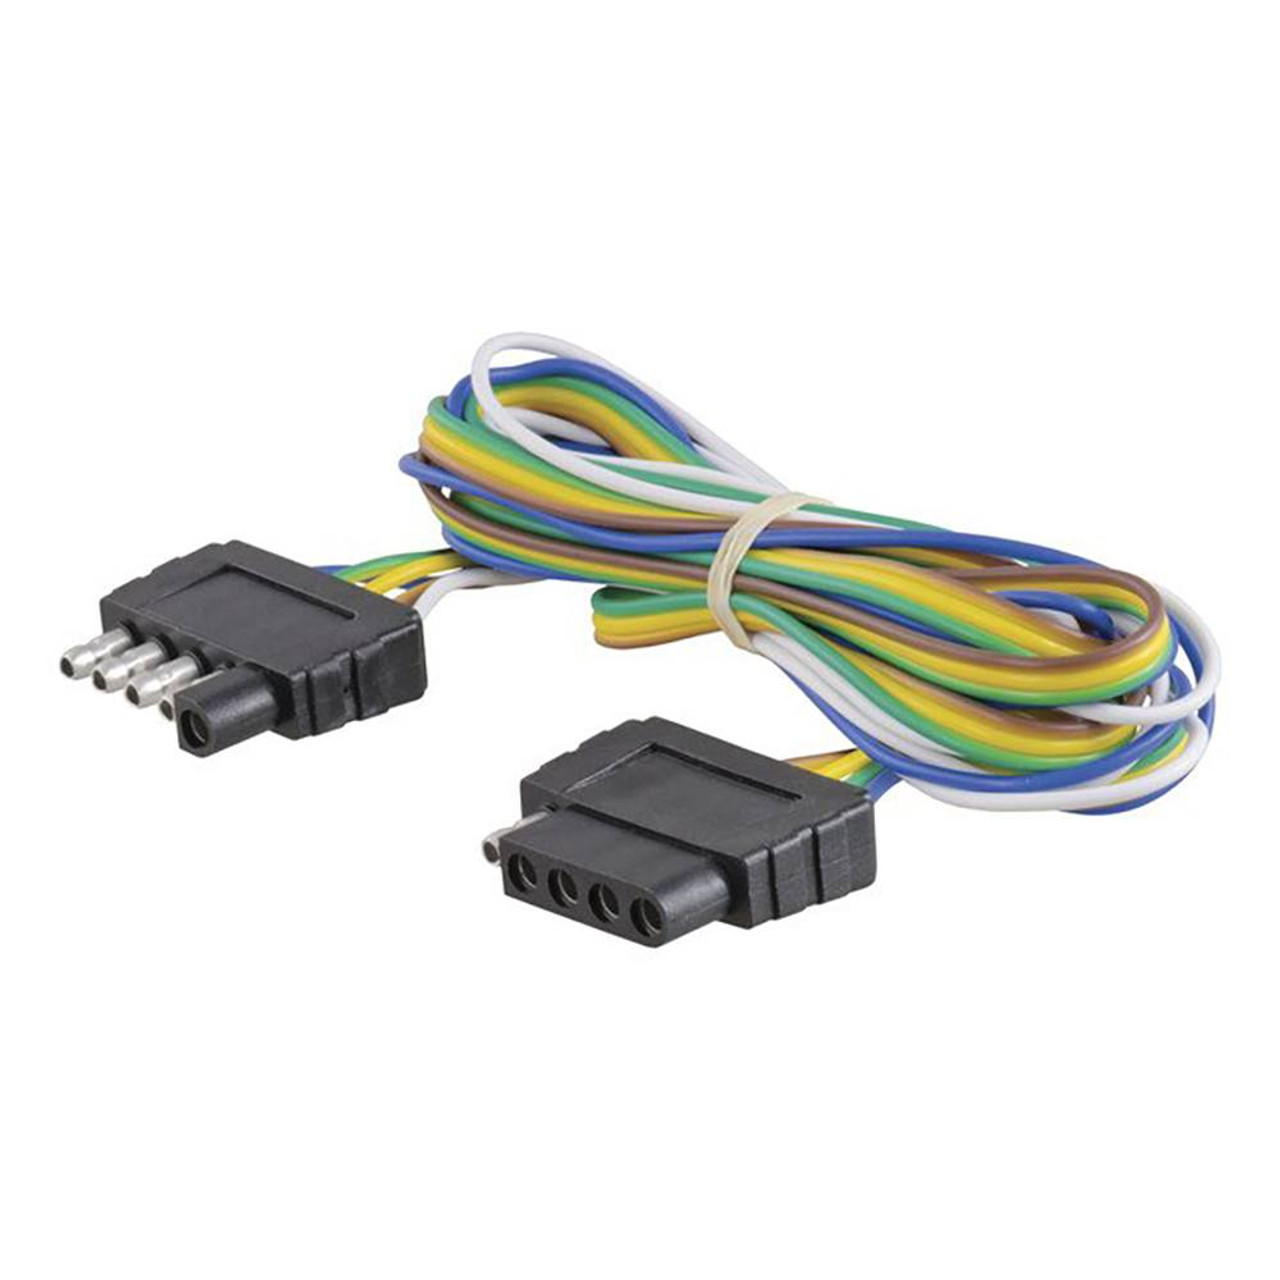 5-Way Flat Wiring Connector